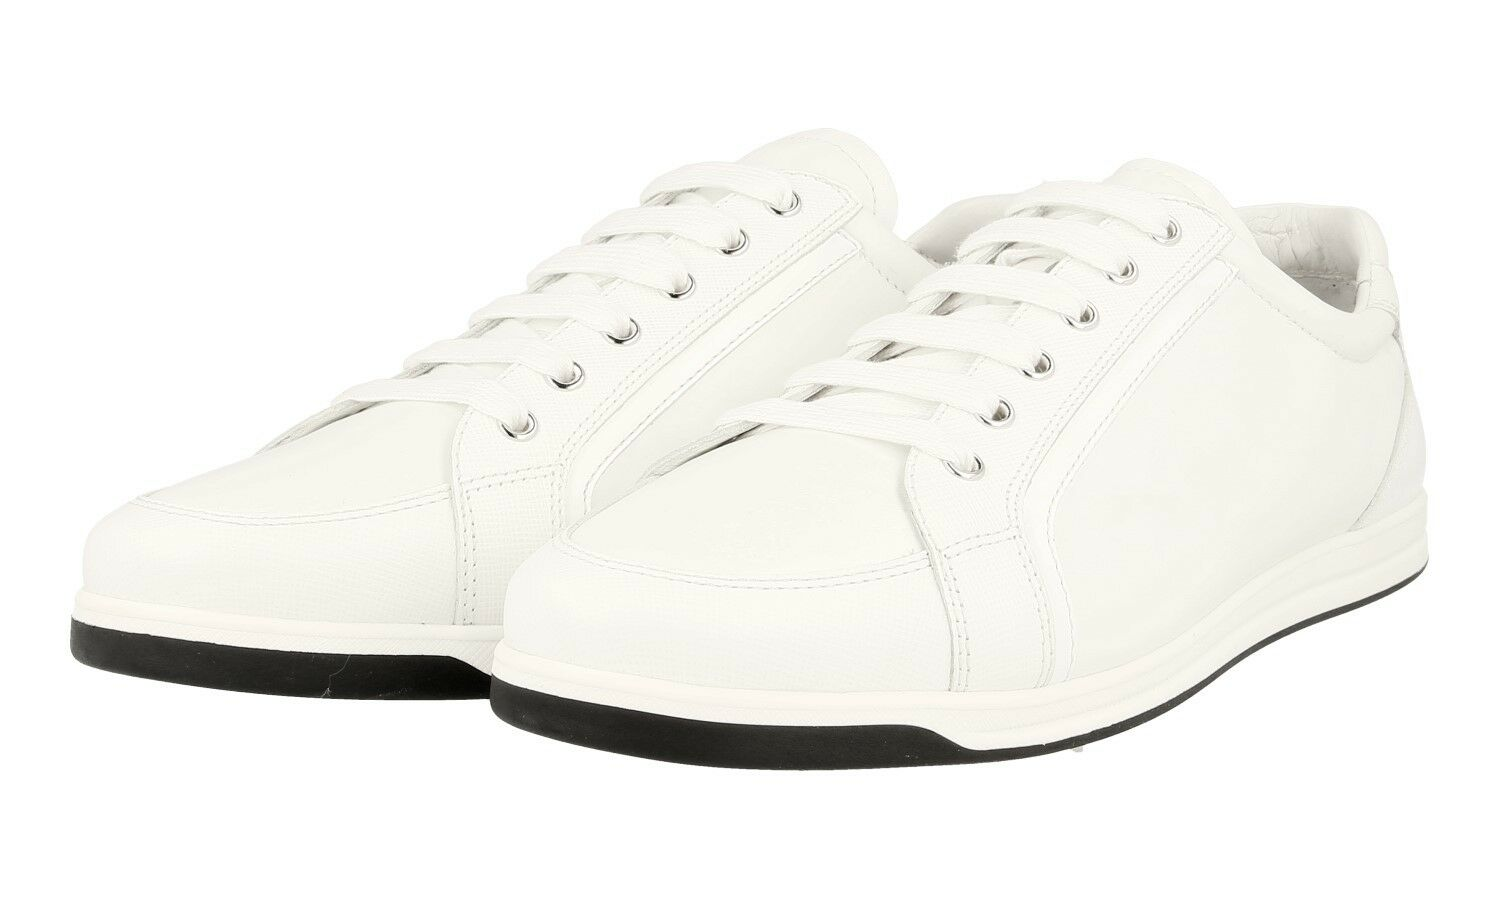 AUTH LUXURY PRADA SAFFIANO SNEAKERS SHOES 3E5892 WHITE 39,5 40 UK 6.5